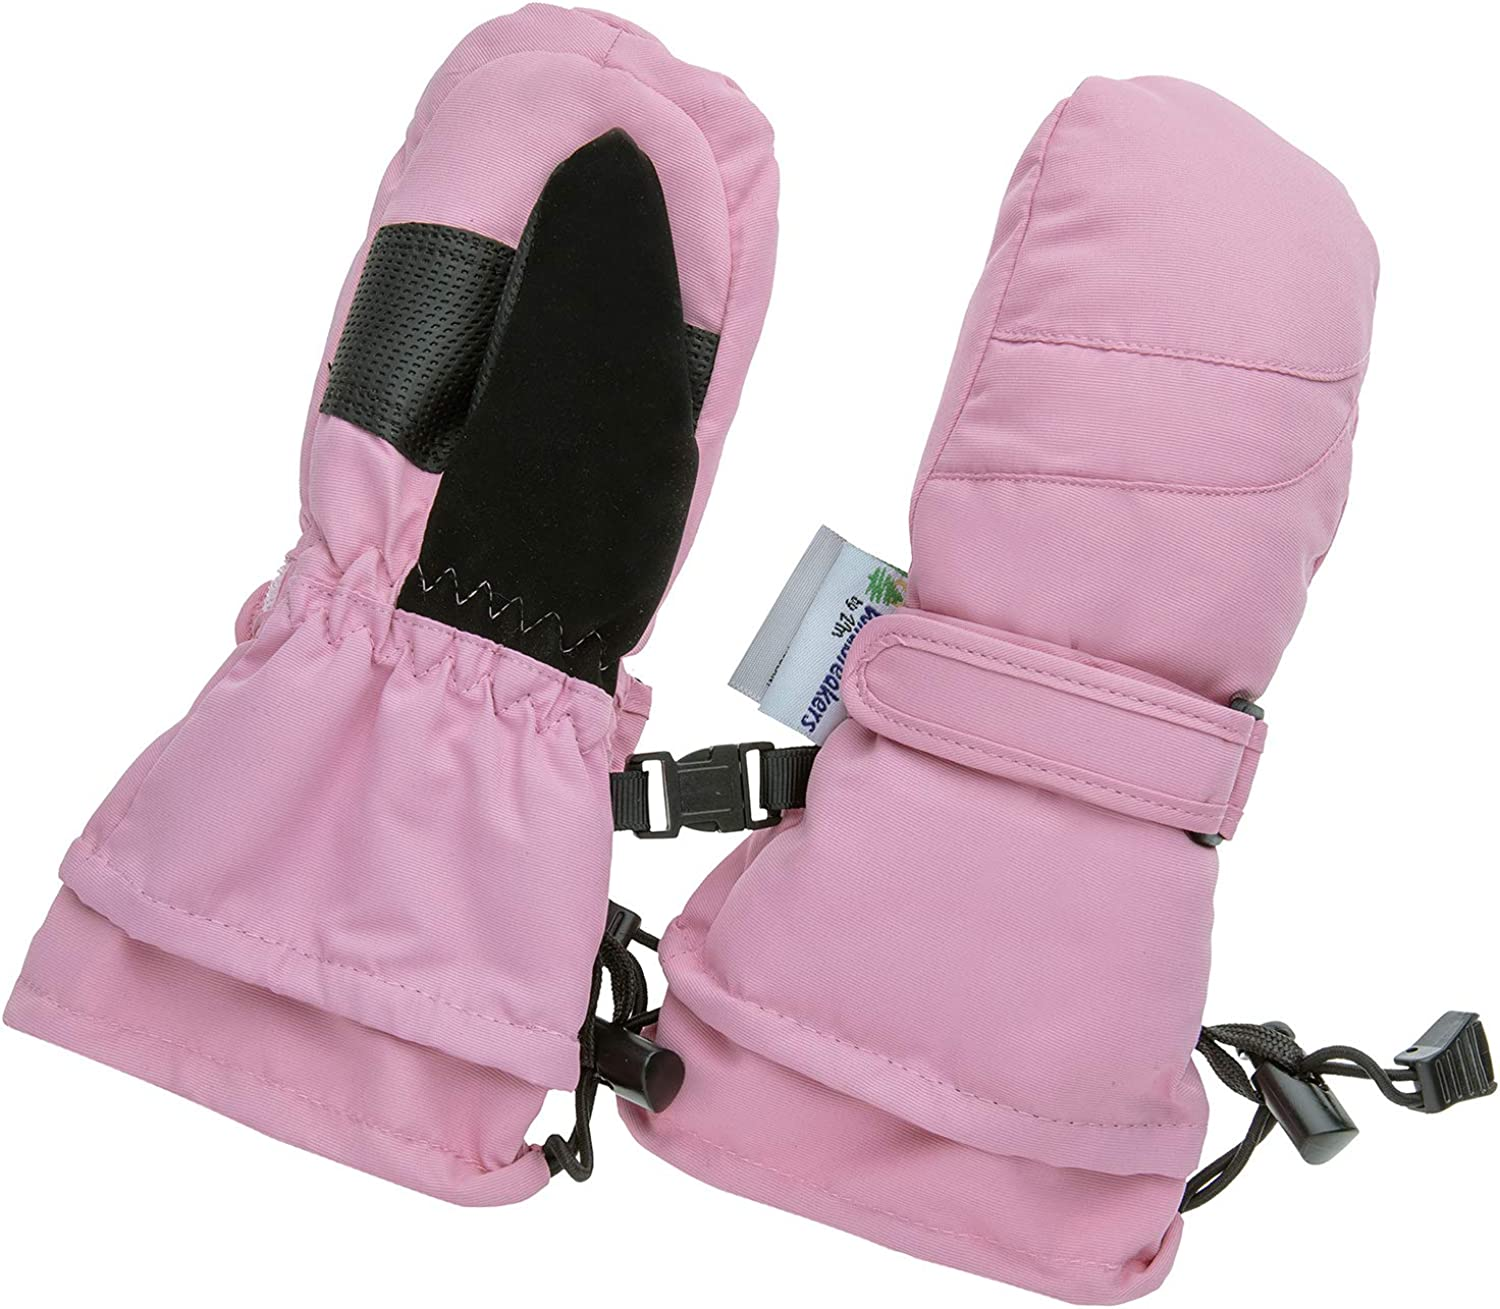 Winter Waterproof Gloves Zelda Matilda Baby Boys Toddlers And Baby Mittens Made With Thinsulate And Fleece